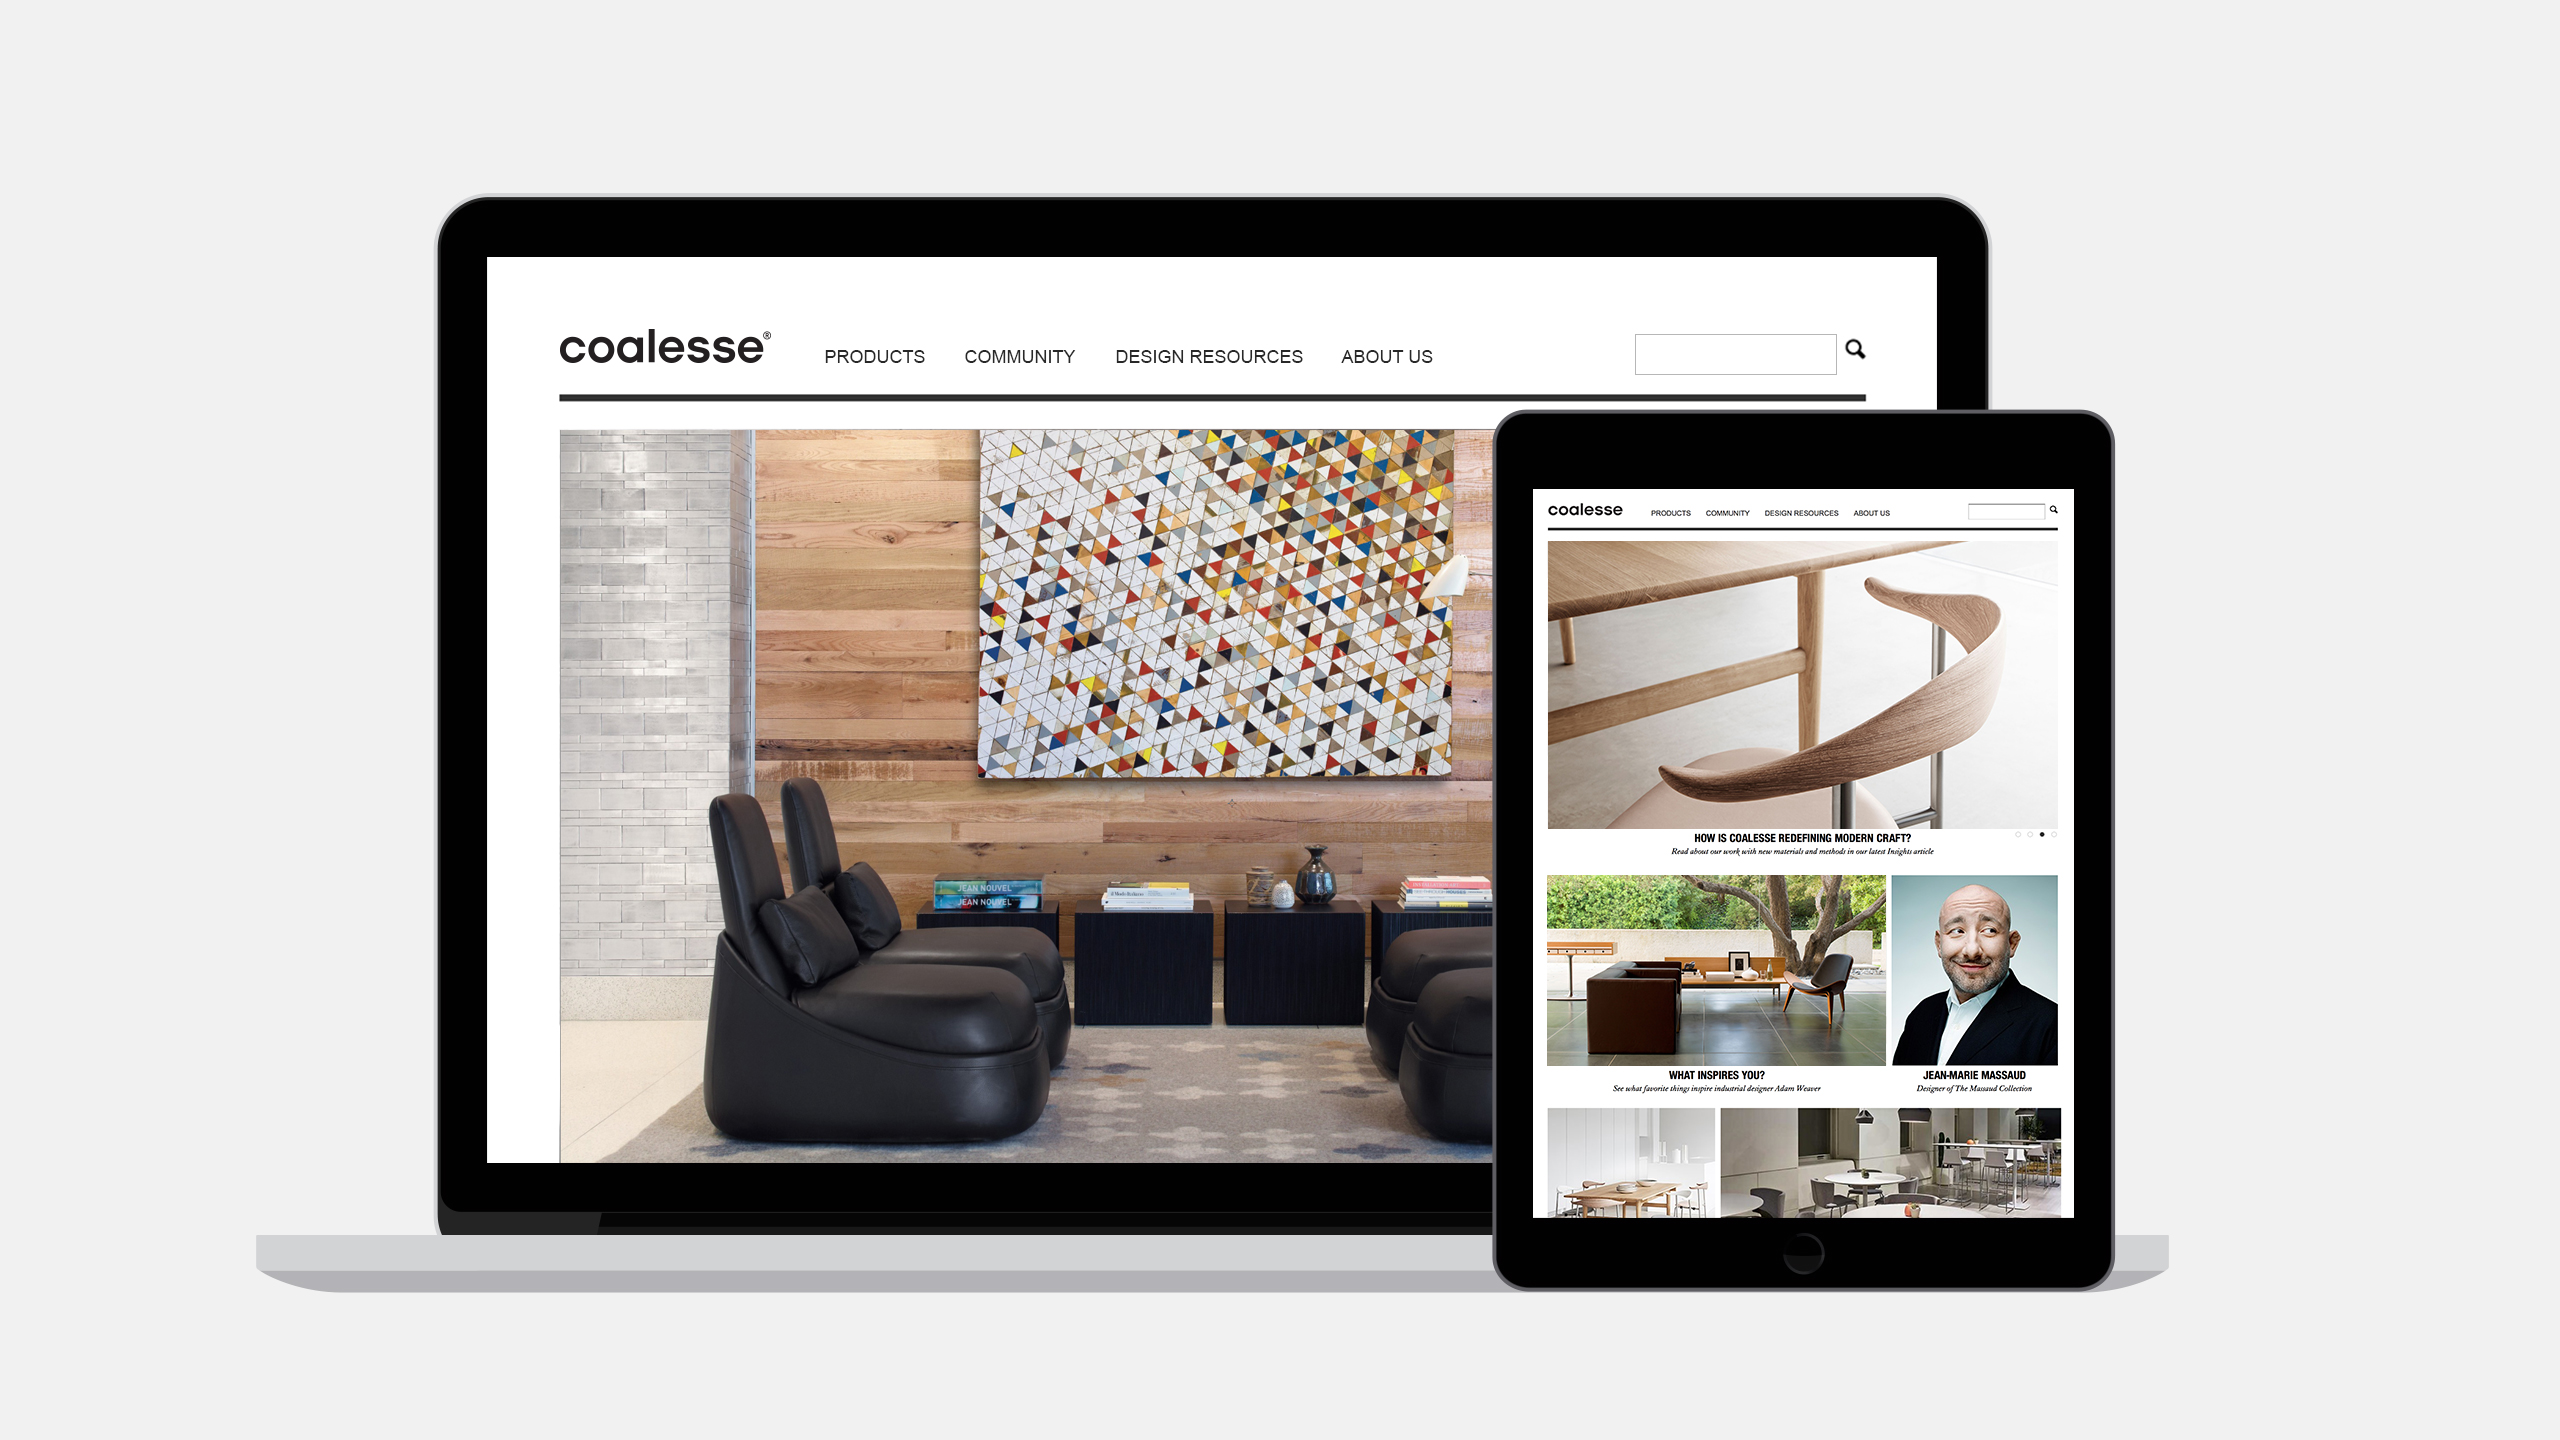 Coalesse Interactive Case Study on Laptop and iPad